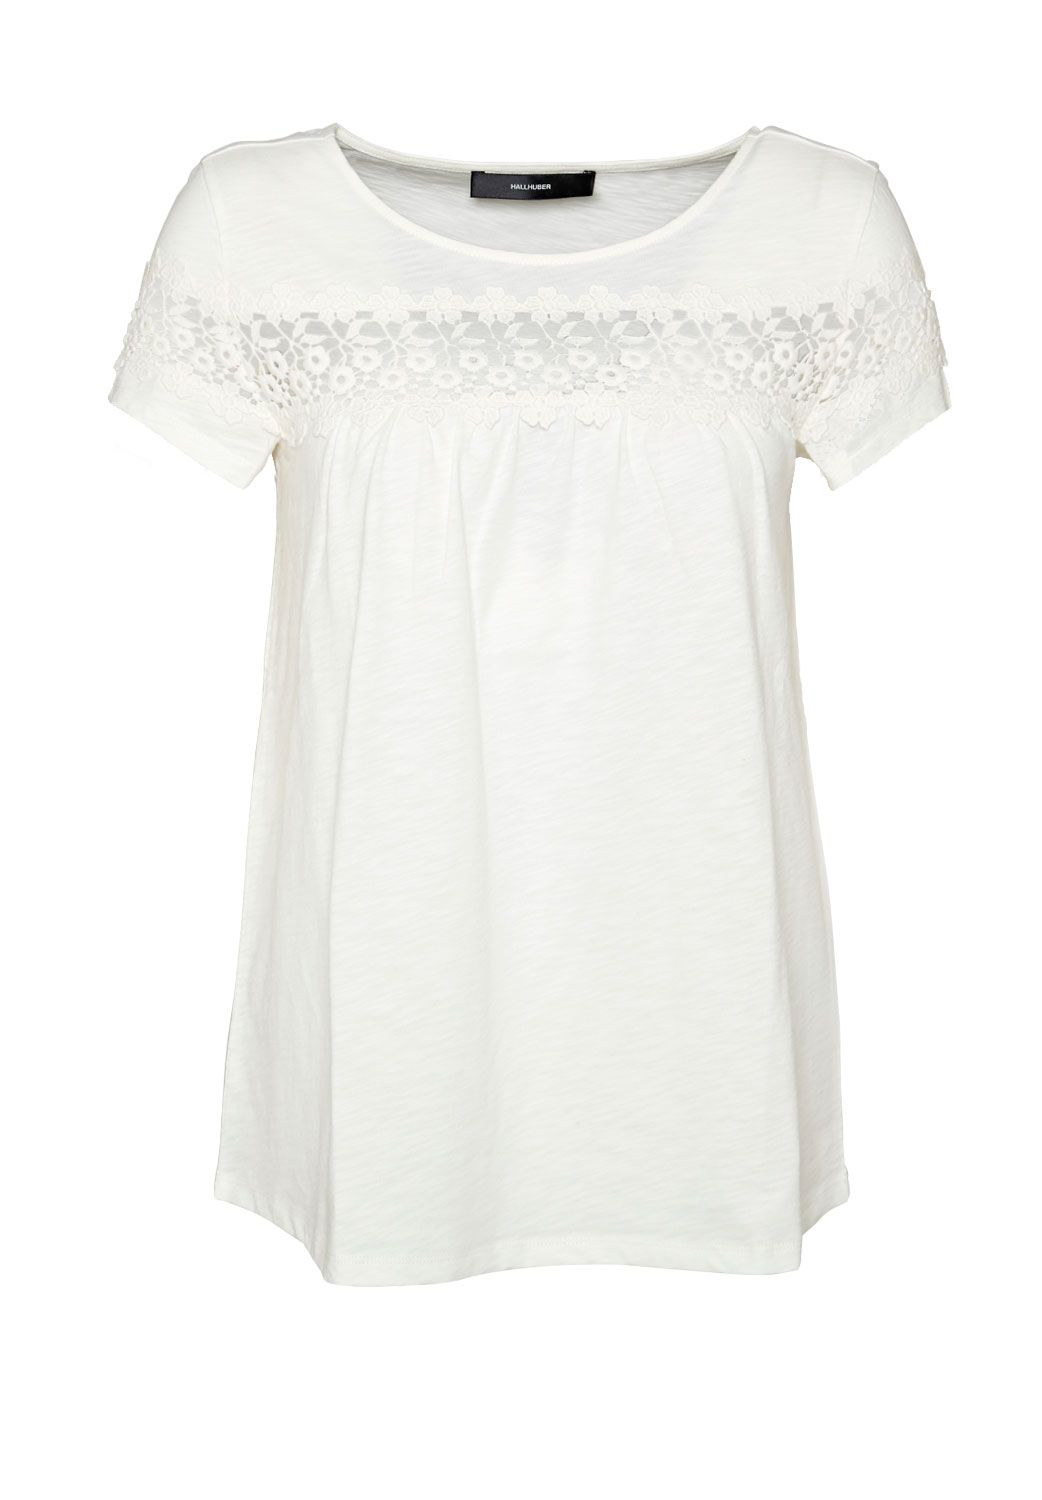 Hallhuber T-shirt with sheer lace insert, White